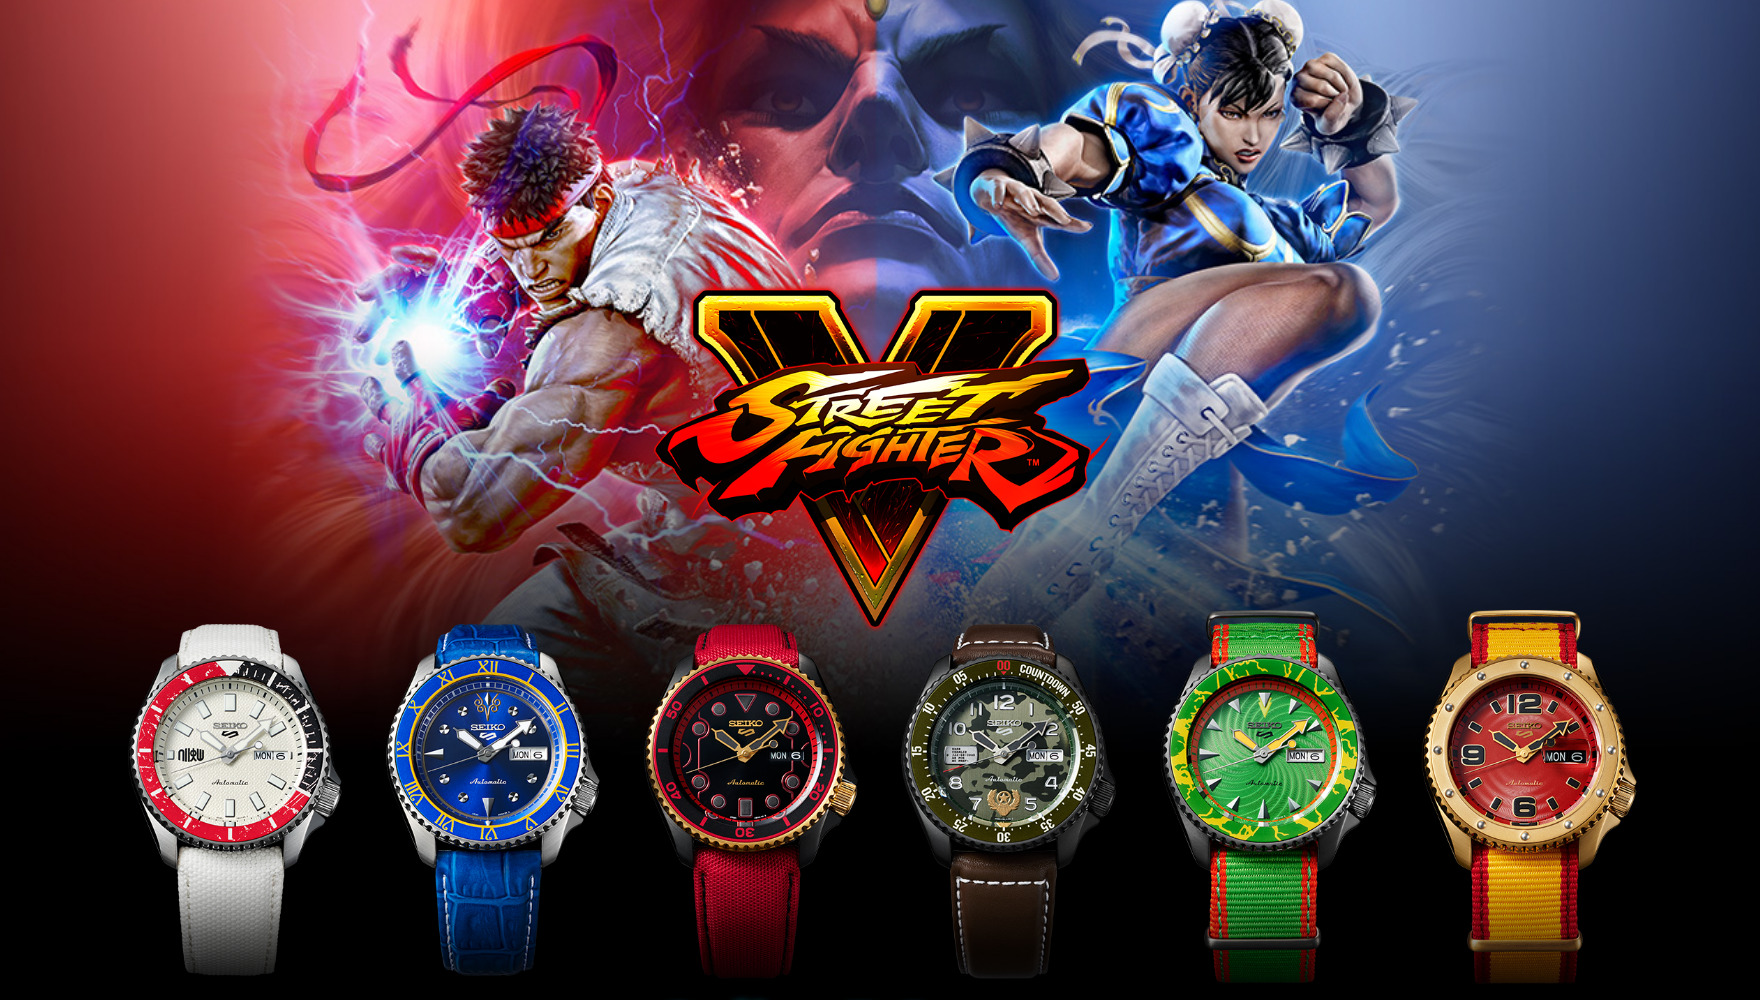 Seiko 5 Street Fighter V Watches